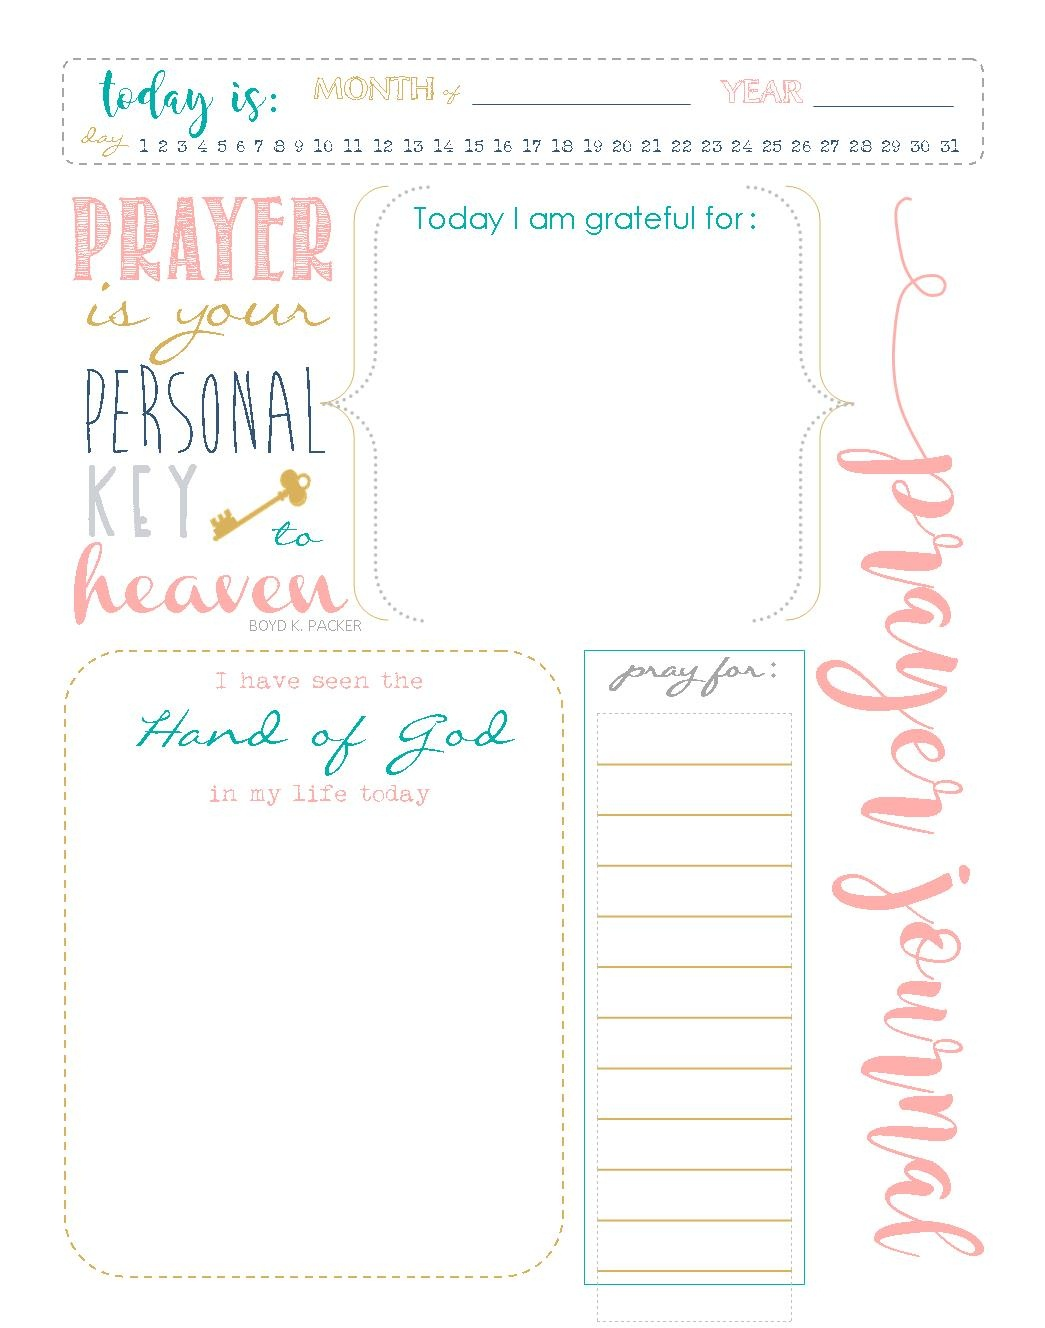 Start A Prayer Journal For More Meaningful Prayers: Free Printables!!! - Free Printable Prayer List